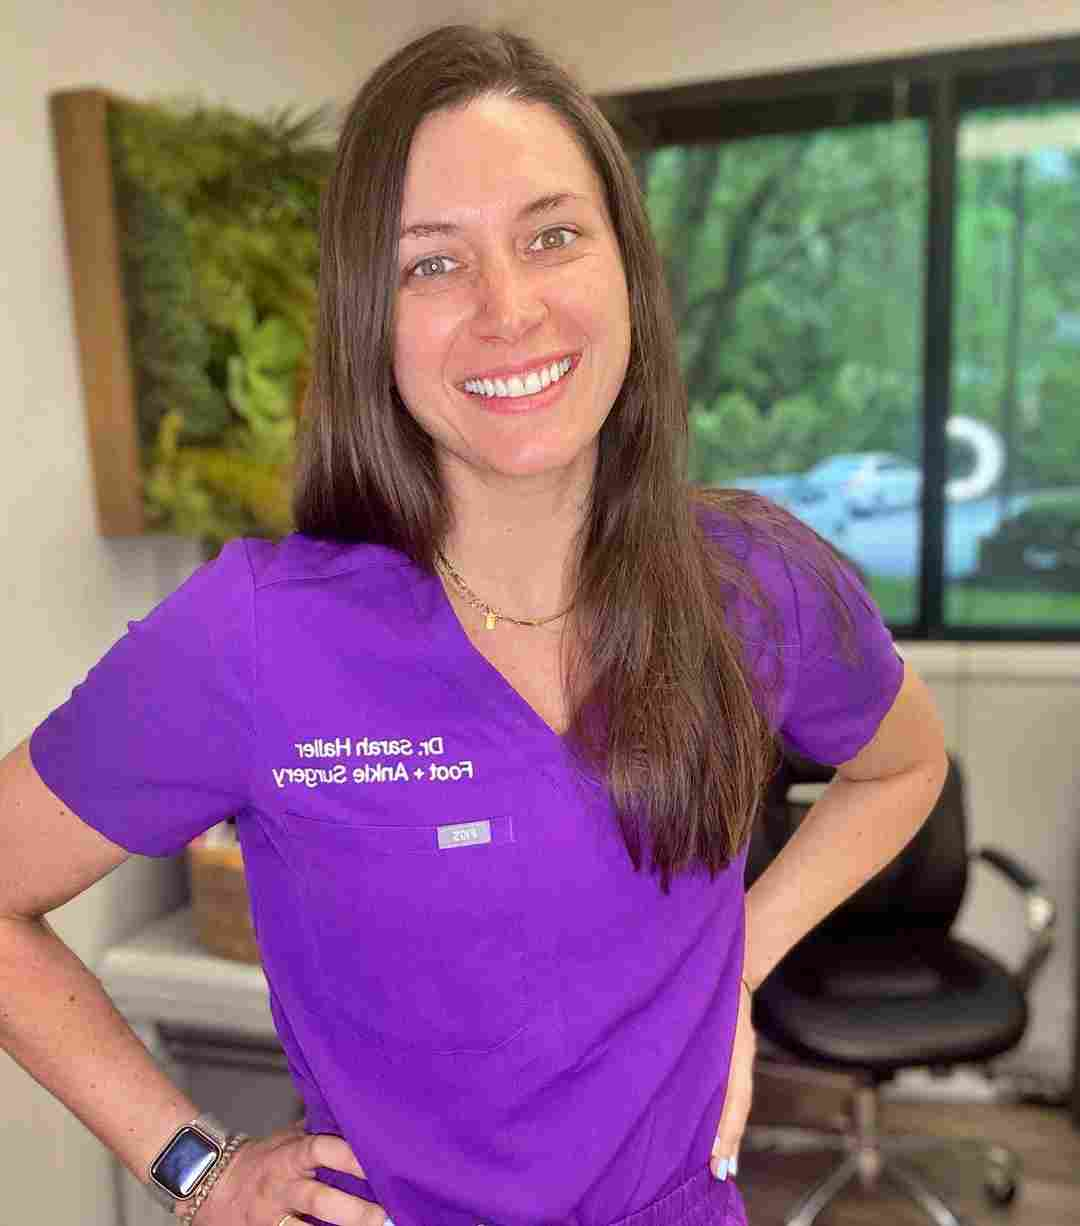 Dr. Sarah Haller of My Feet Are Killing Me on TLC